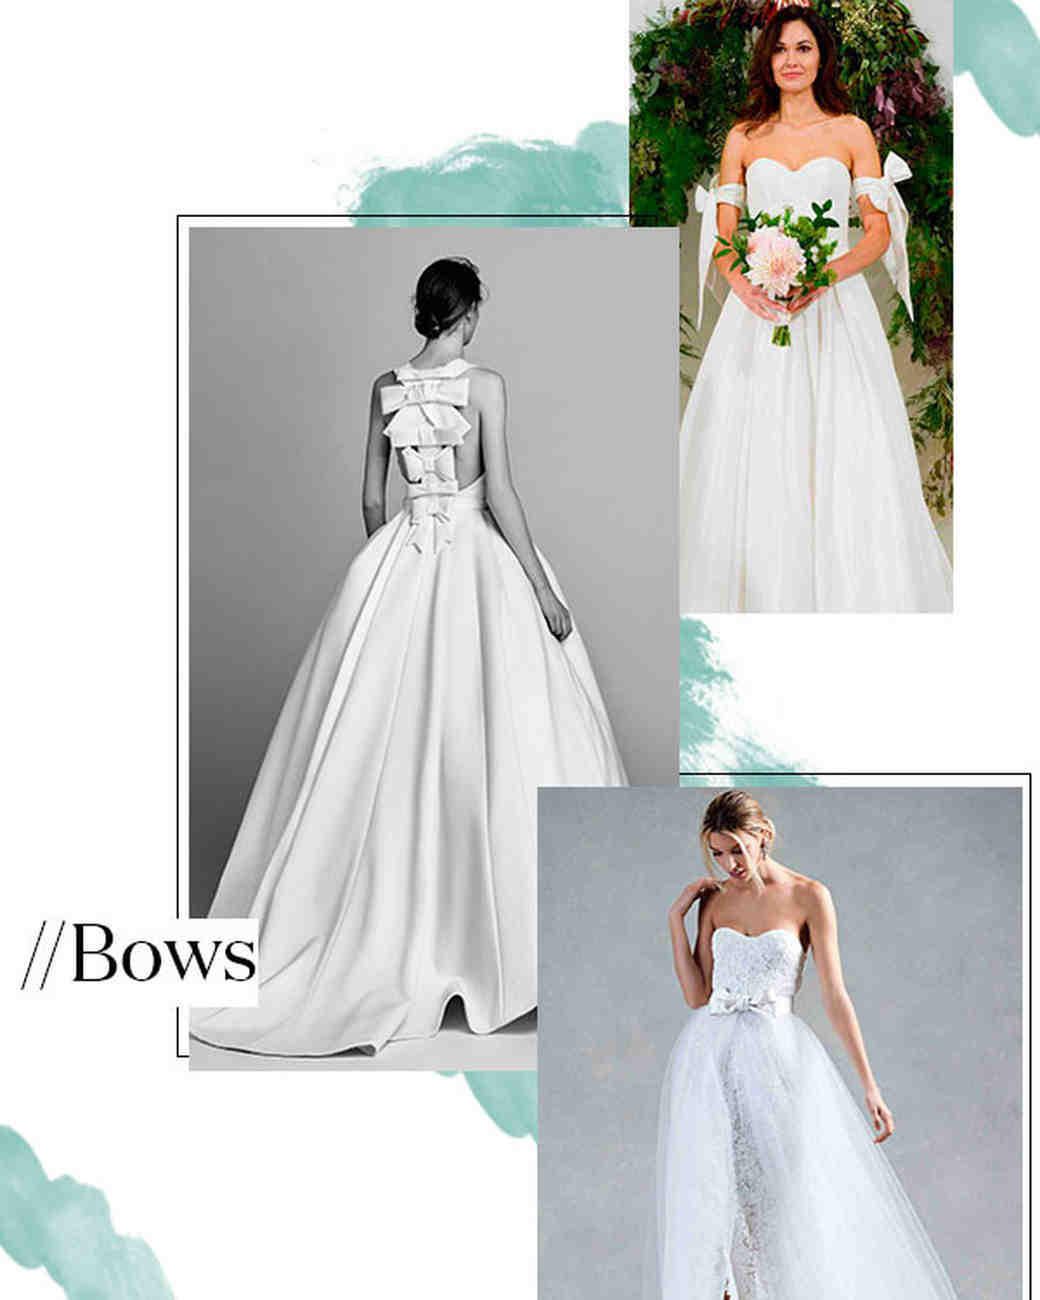 Fall 2017 Wedding Dress Trend: Bows